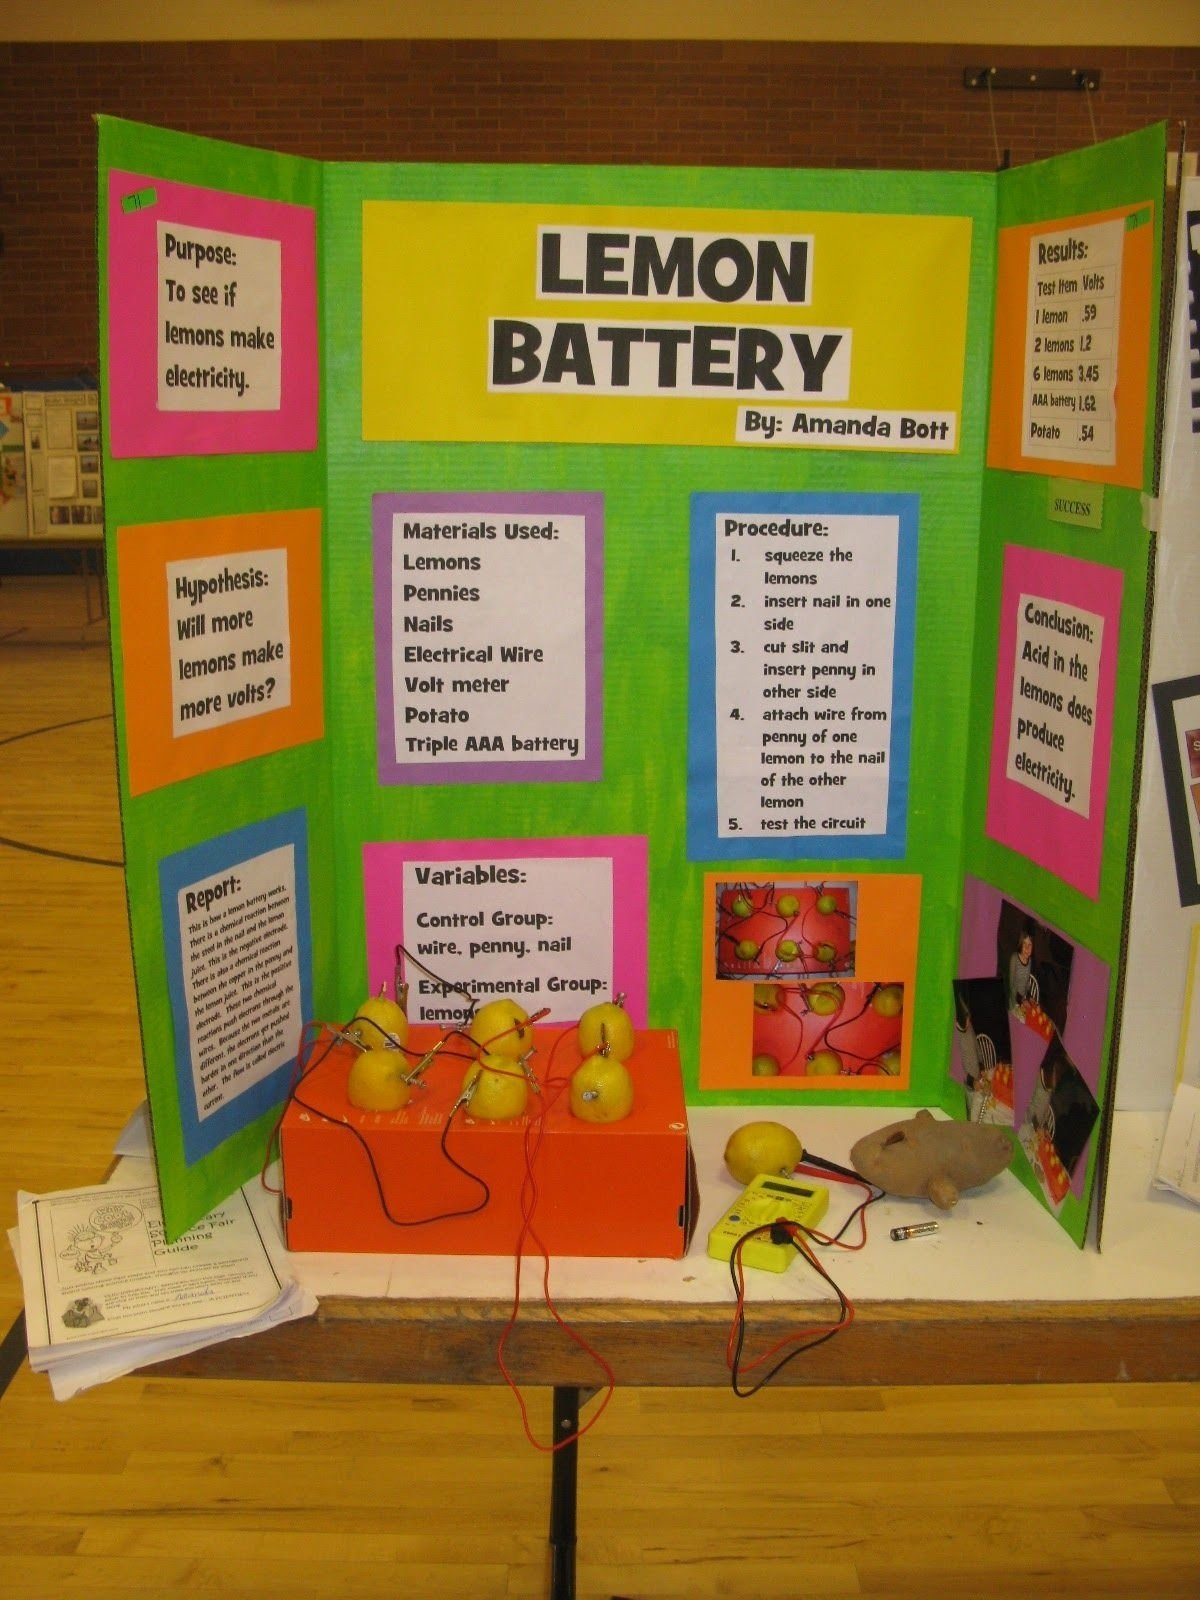 10 Spectacular Science Fair Project Ideas For Kids In 4Th Grade the science of my life updated declo science fair with newspaper 41 2020